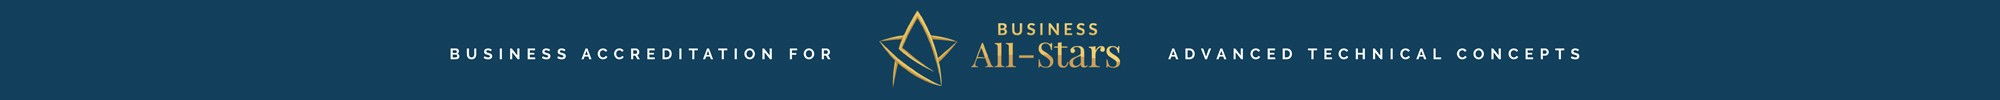 ATC awarded All-Ireland Business All-Star accreditation